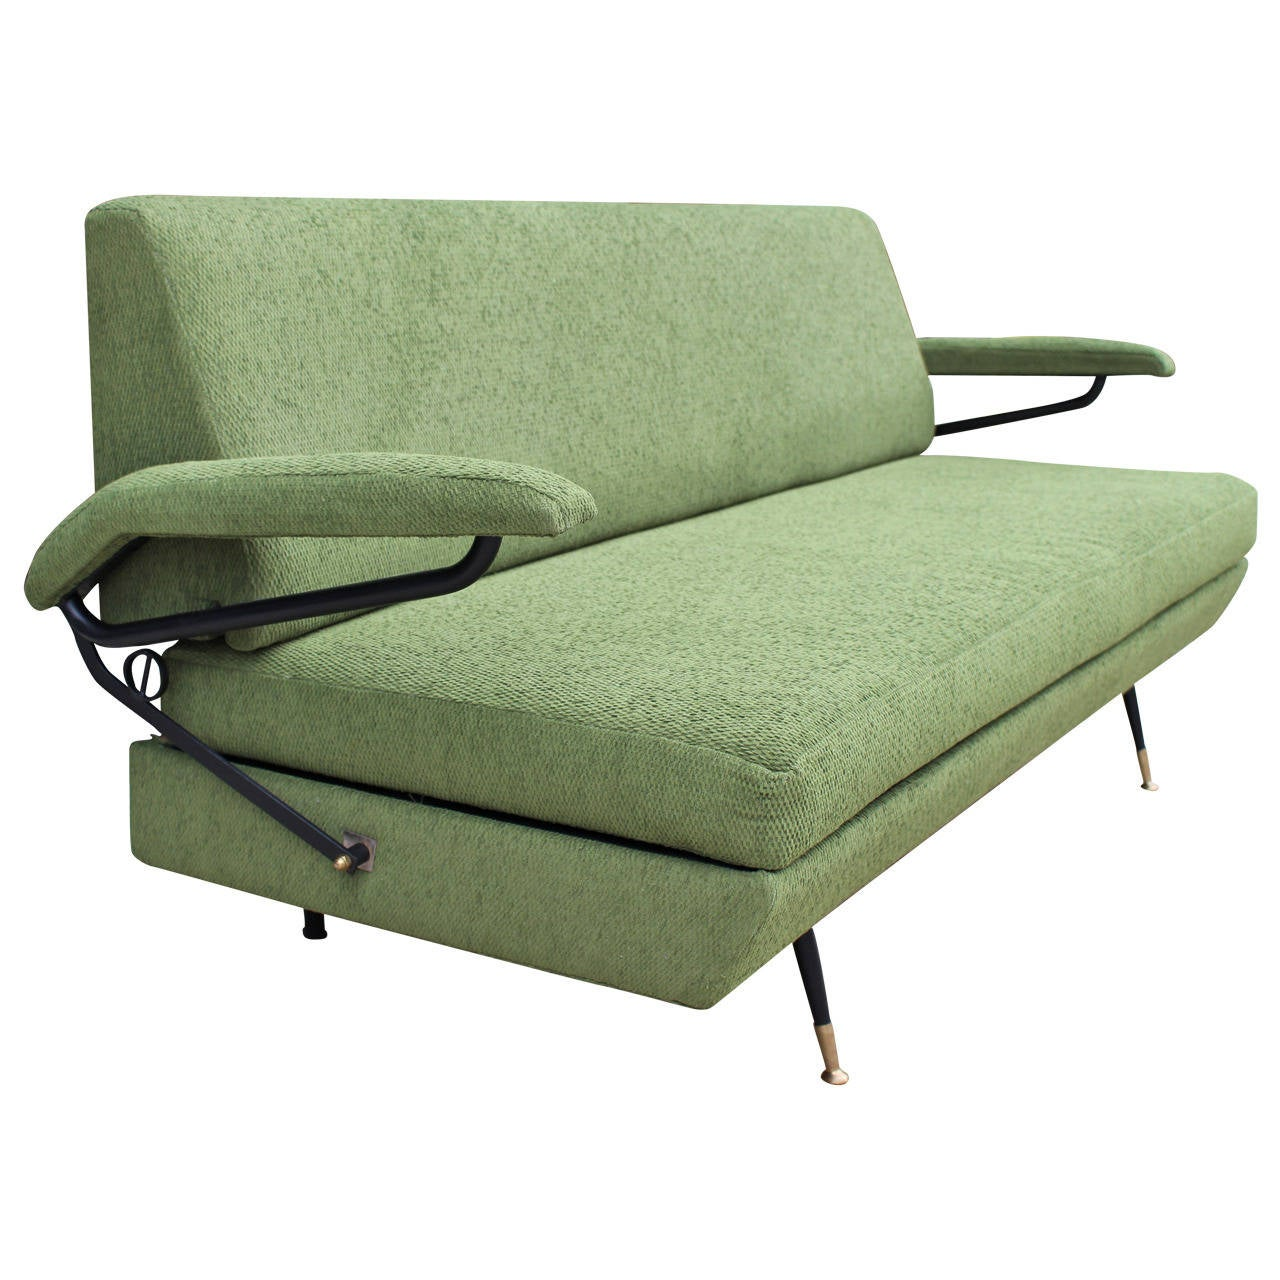 italian sofa in style of osvaldo borsani for sale at 1stdibs